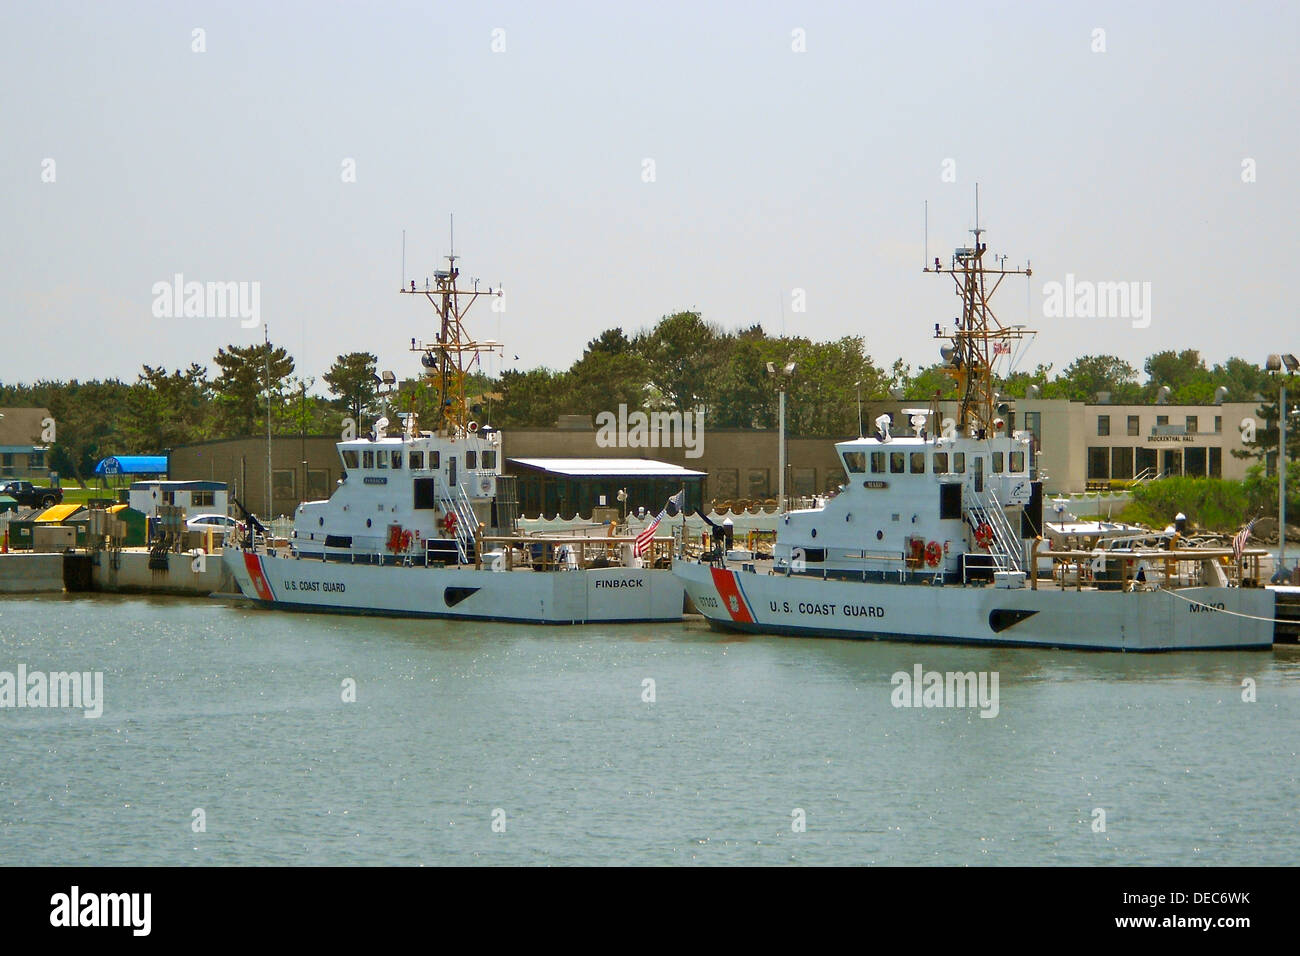 Coast Guard vessels the Finback (left) and the Mako at the Cape May Coast Guard training station in New Jersey. - Stock Image